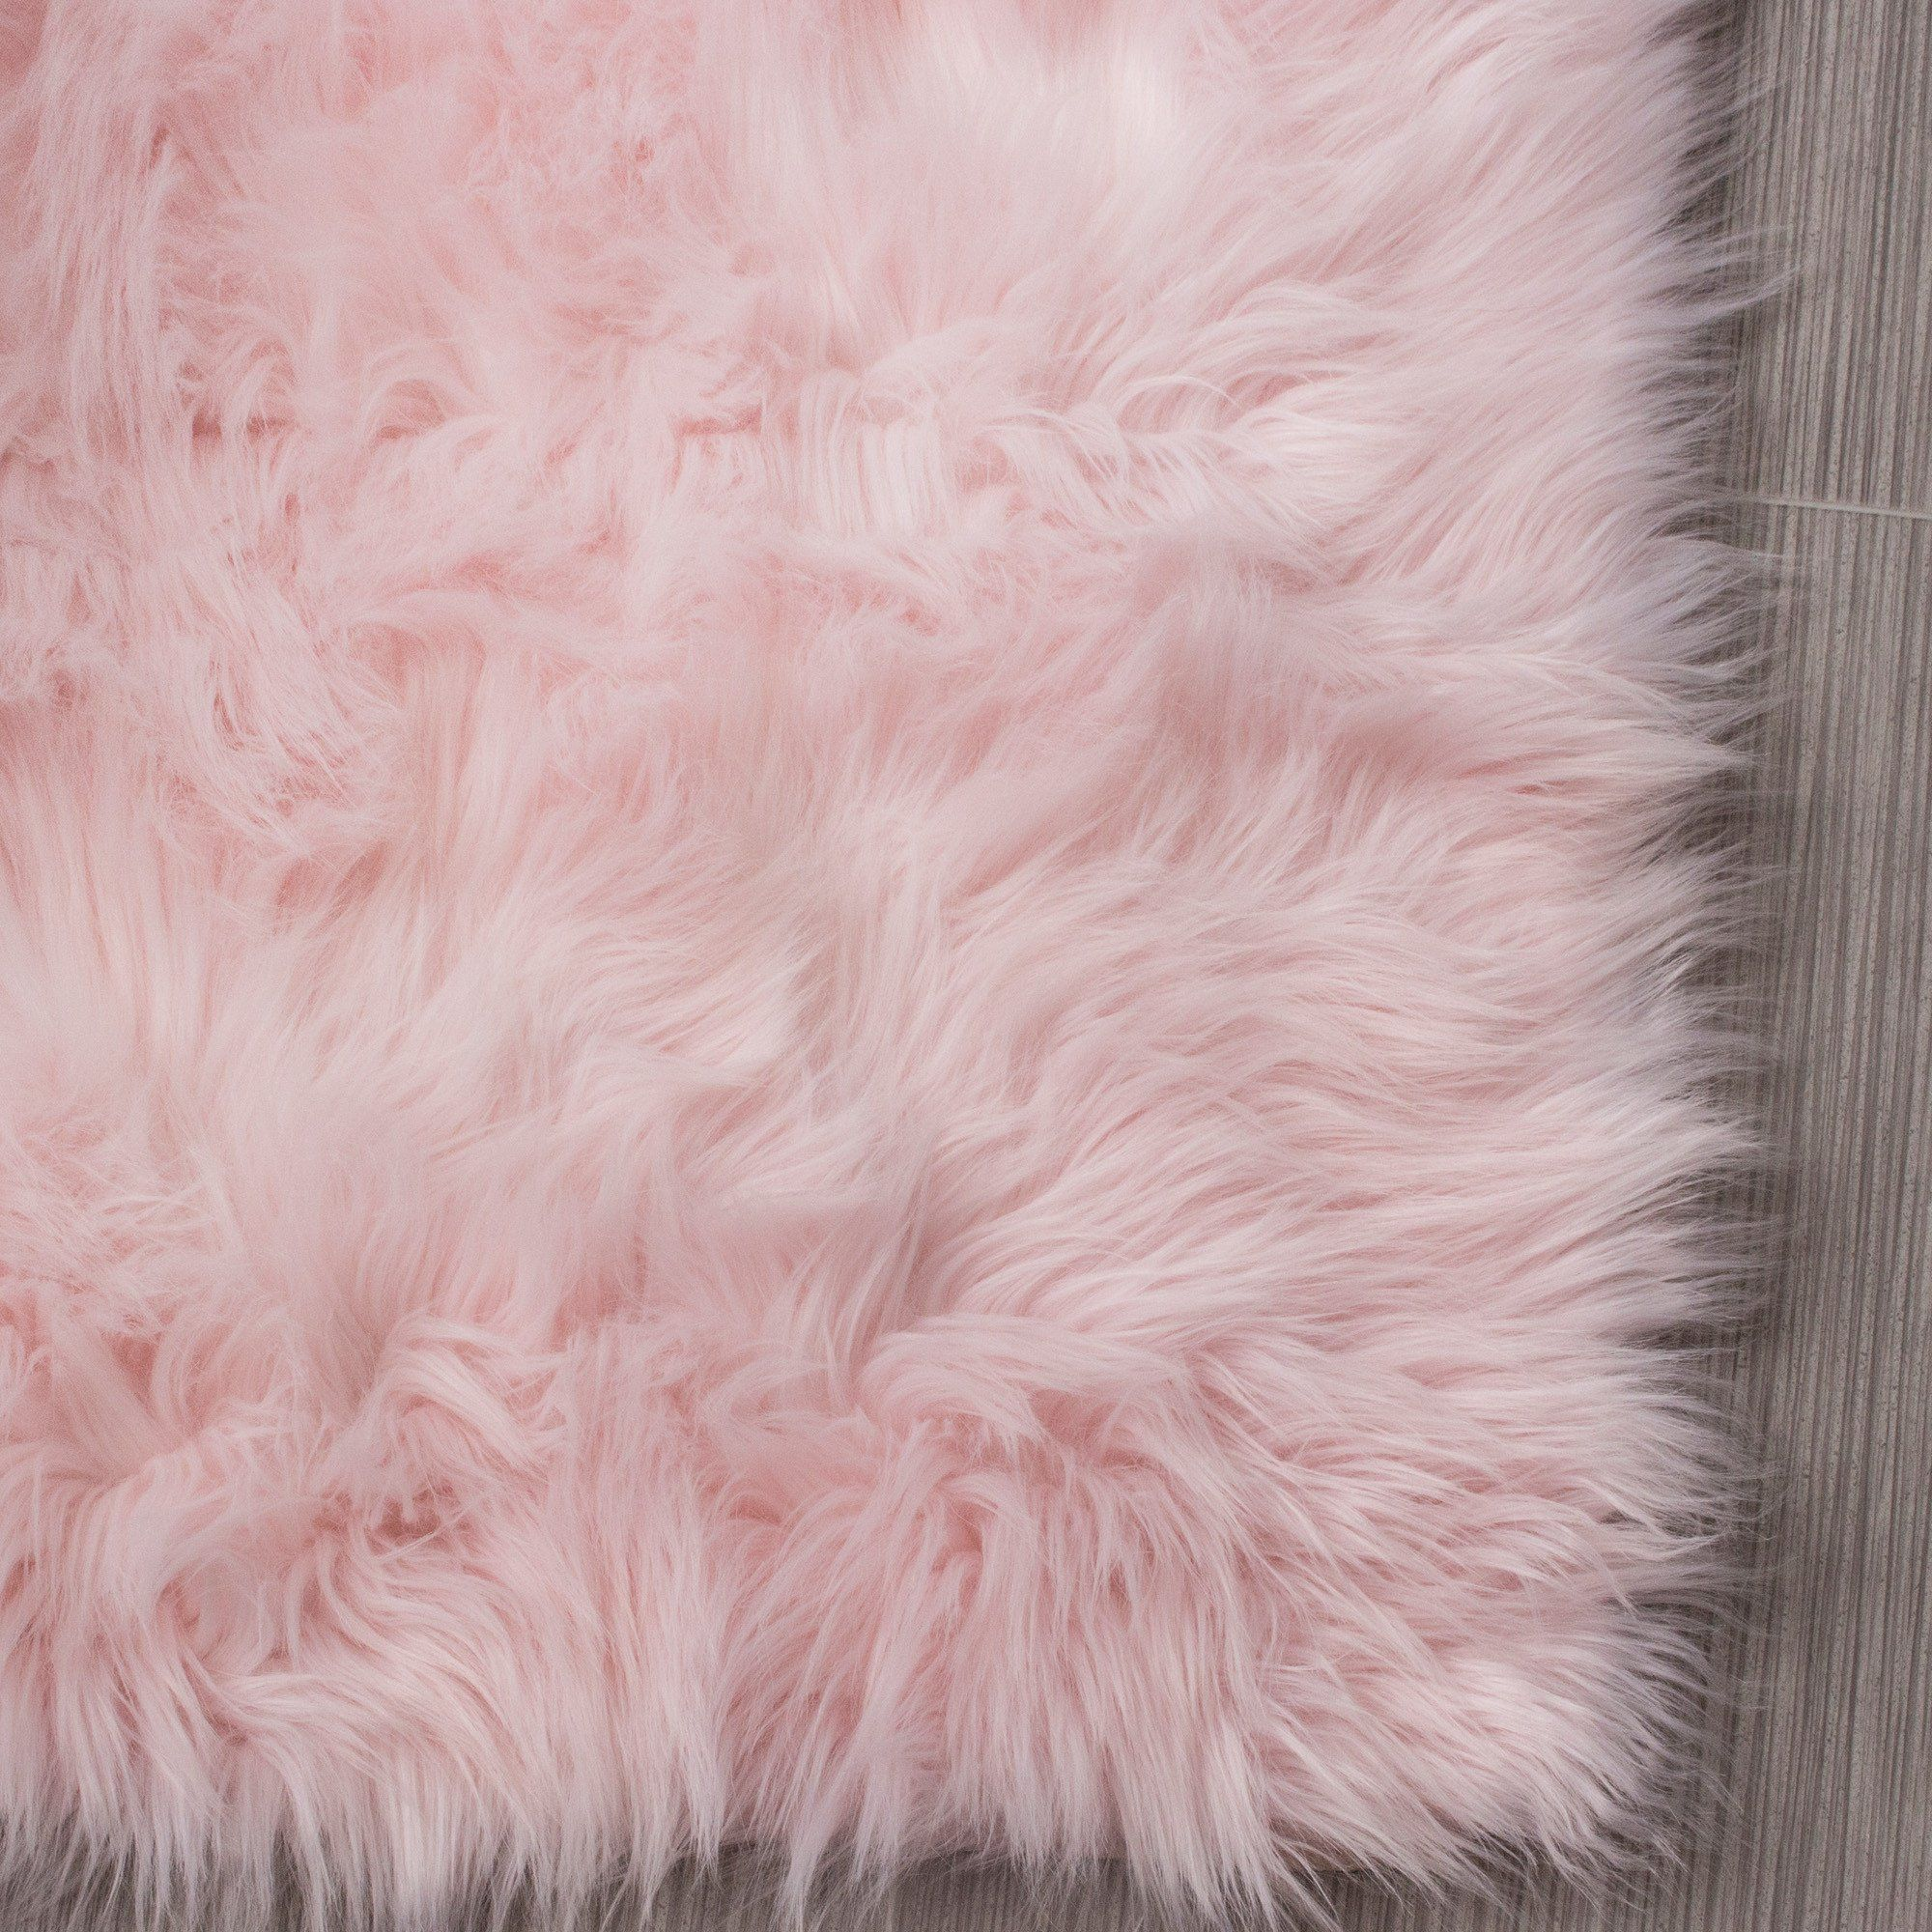 Pink Faux Sheepskin Rug Free Shipping Lowest Price Guarantee